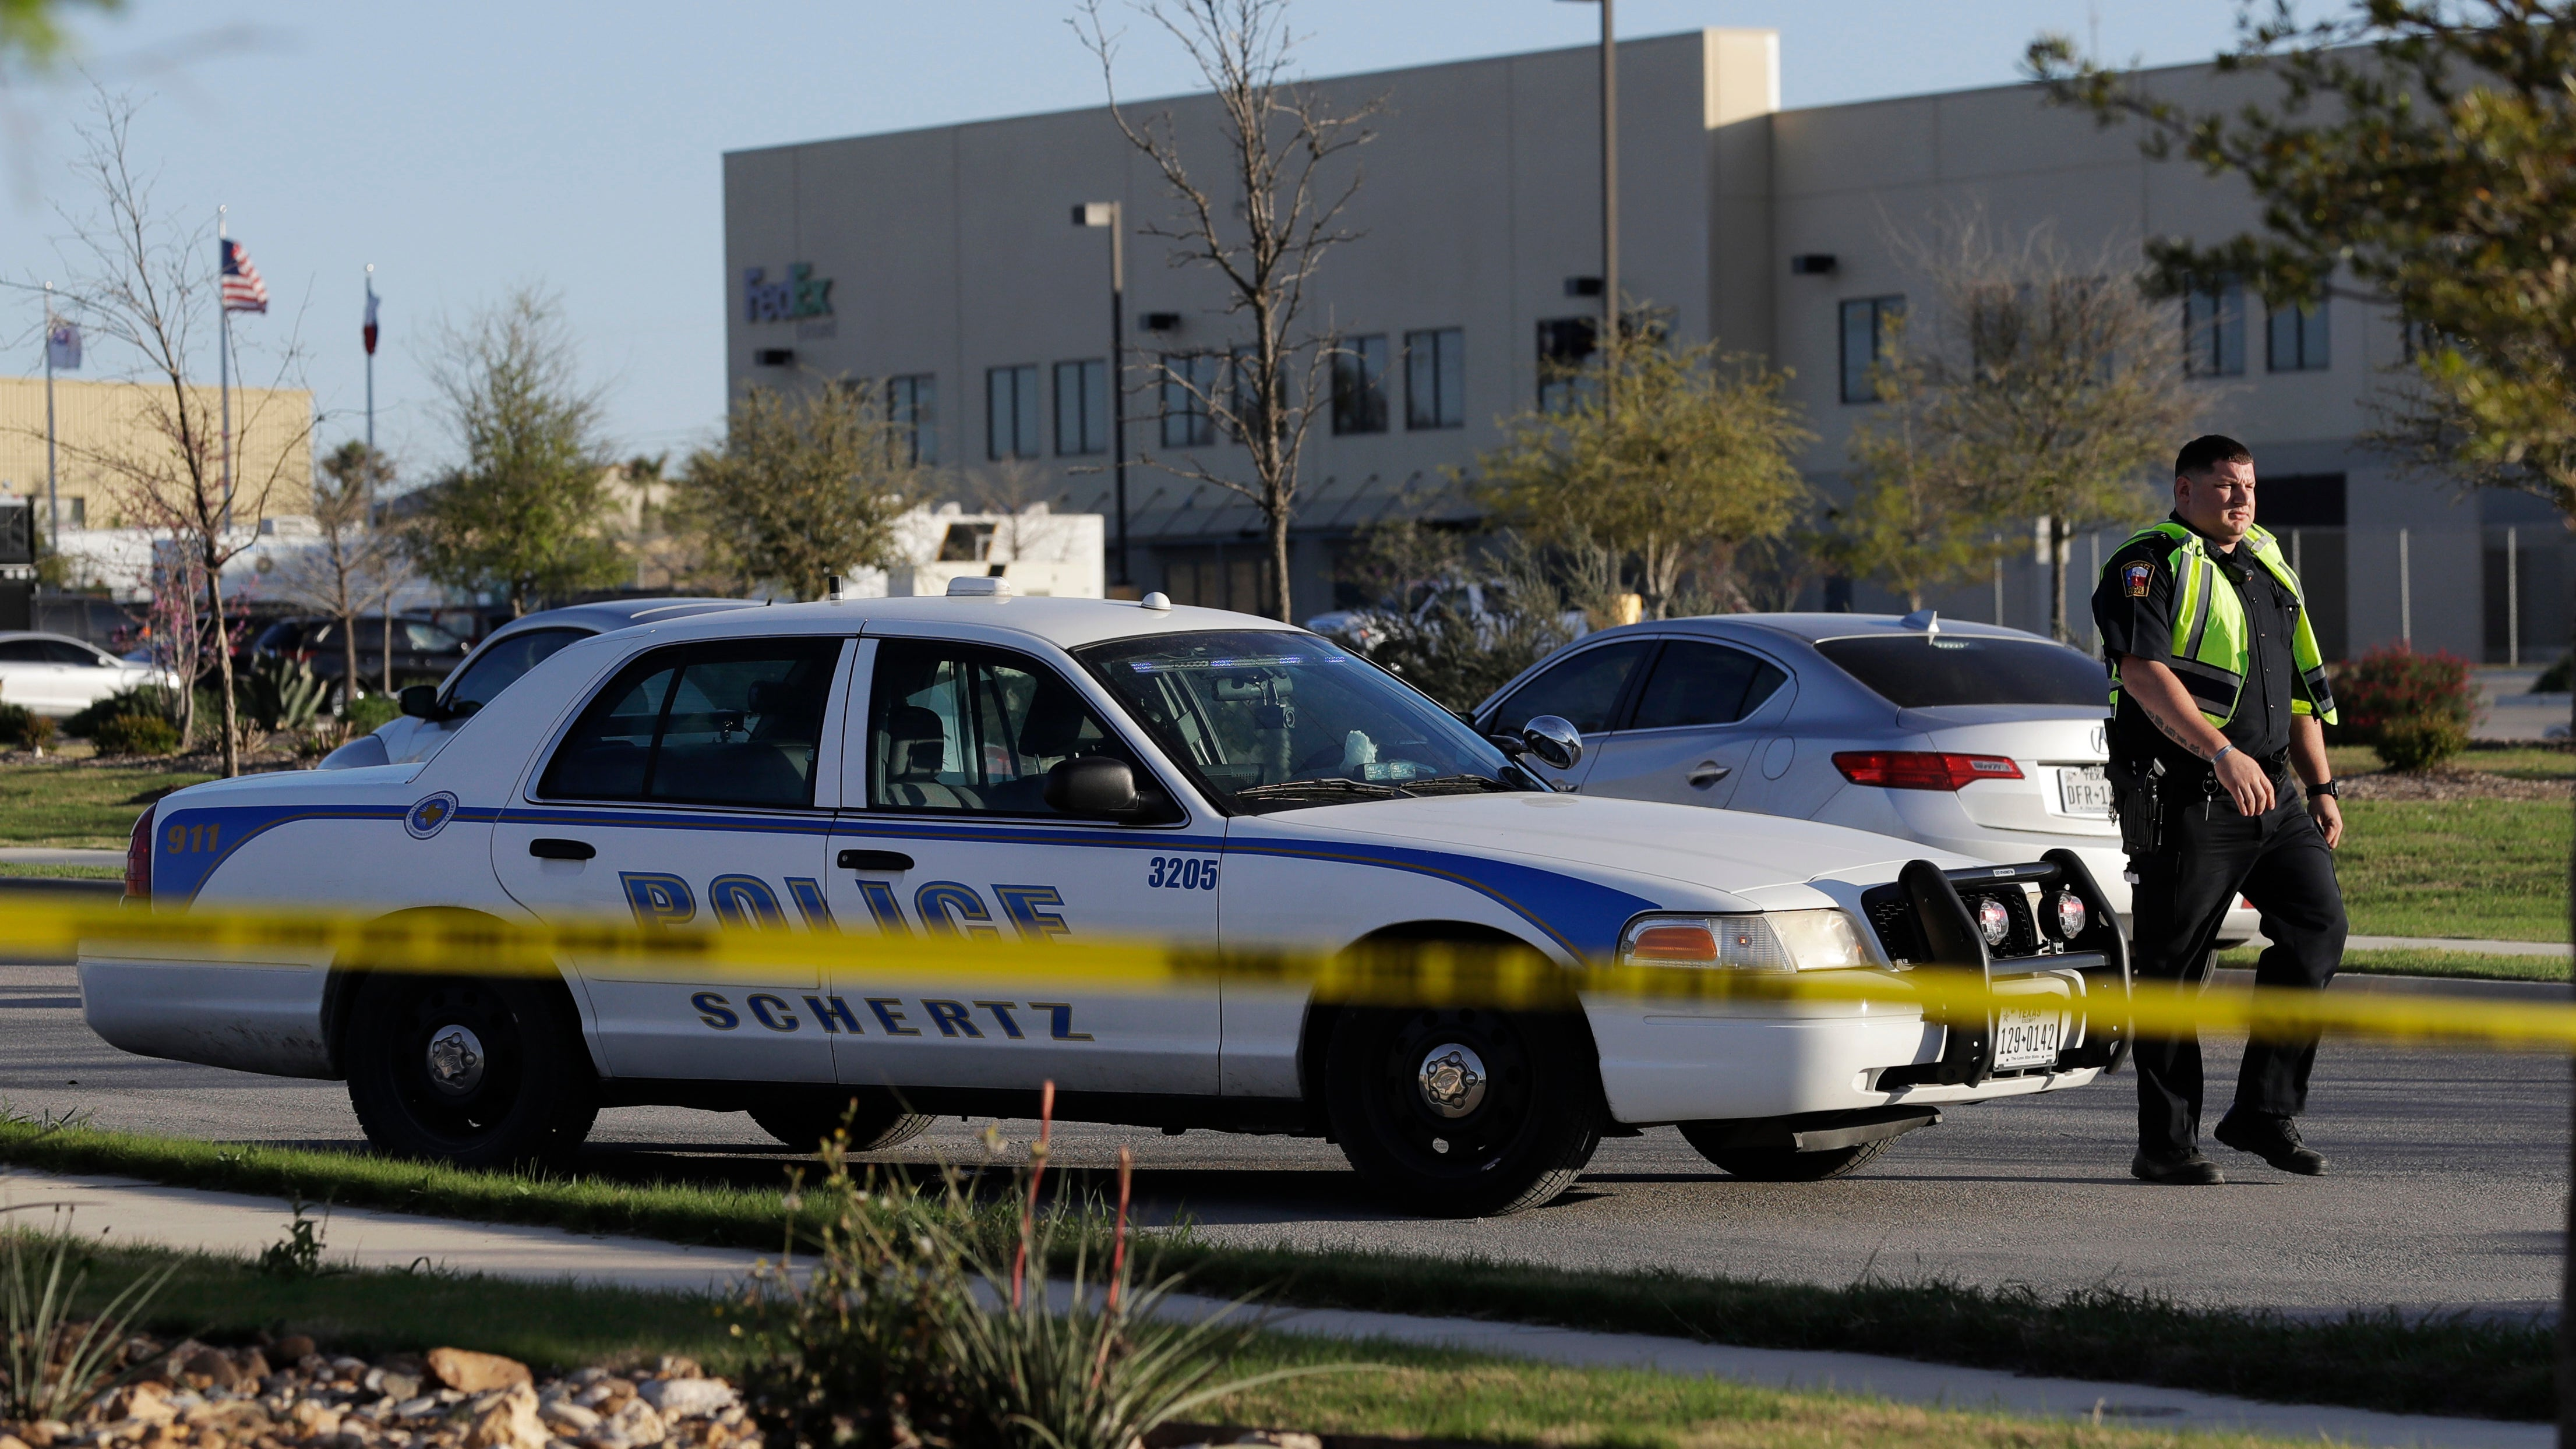 Reports: Texas Bomber May Have Engineering Background, But Has Left Growing Forensic Trail